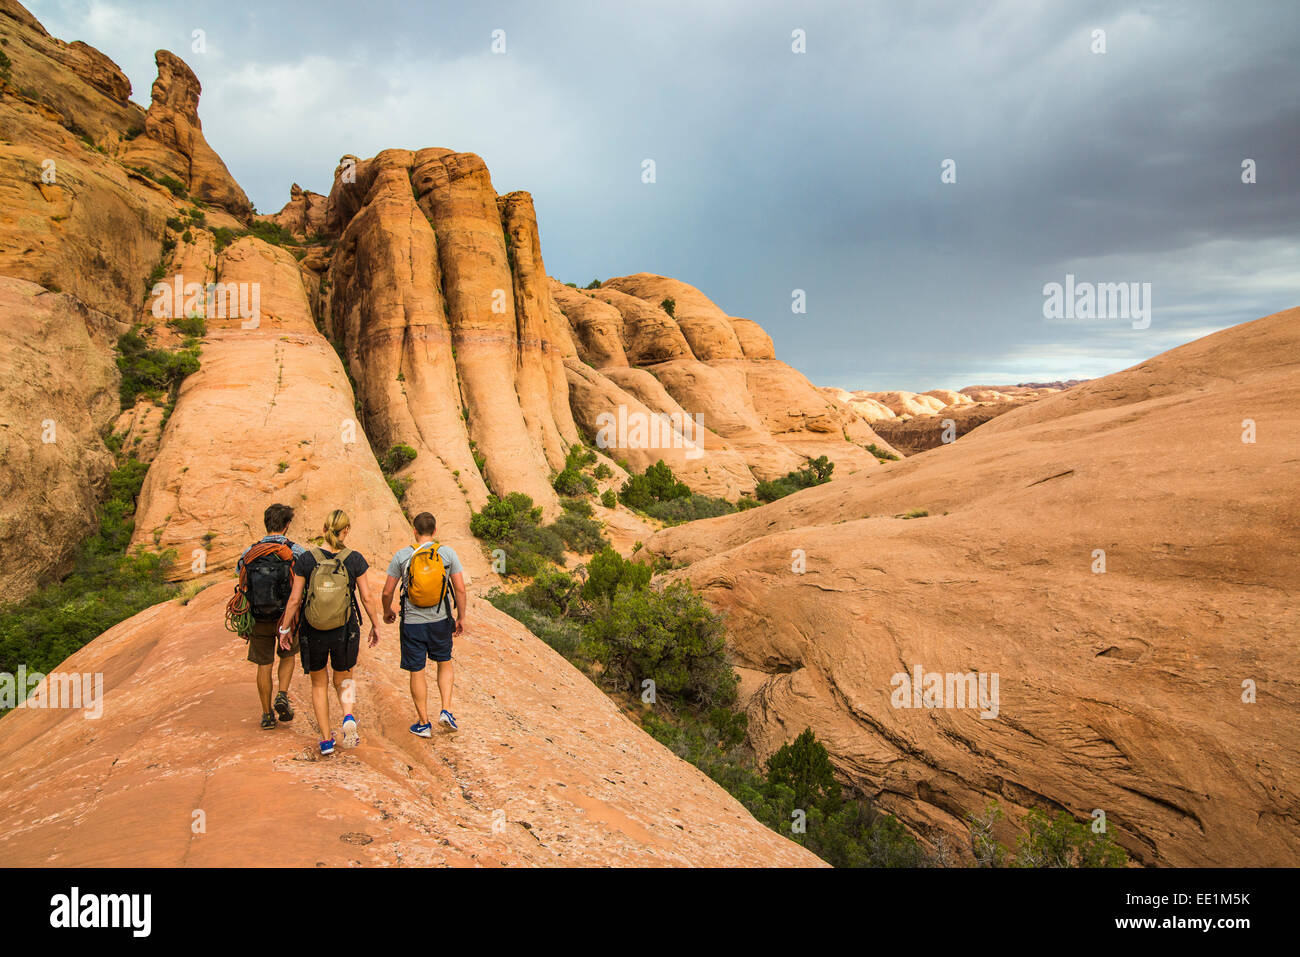 Trekkers walking along the Slickrock trail near, Moab, Utah, United States of America, North America - Stock Image